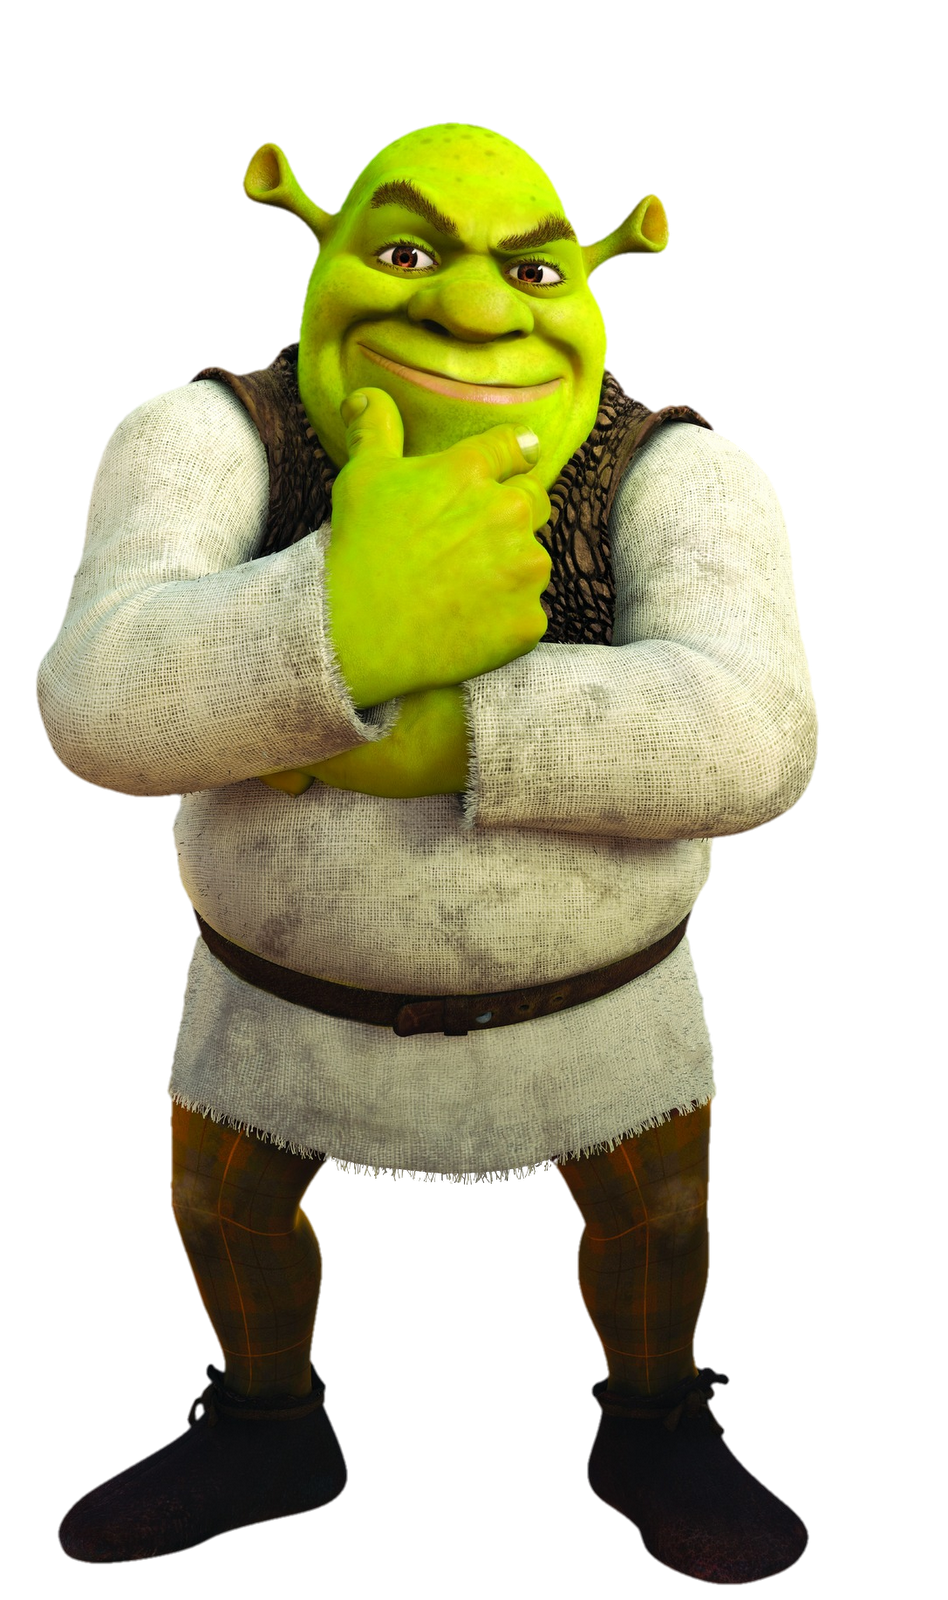 Shrek meme png. Heroes and villians wiki